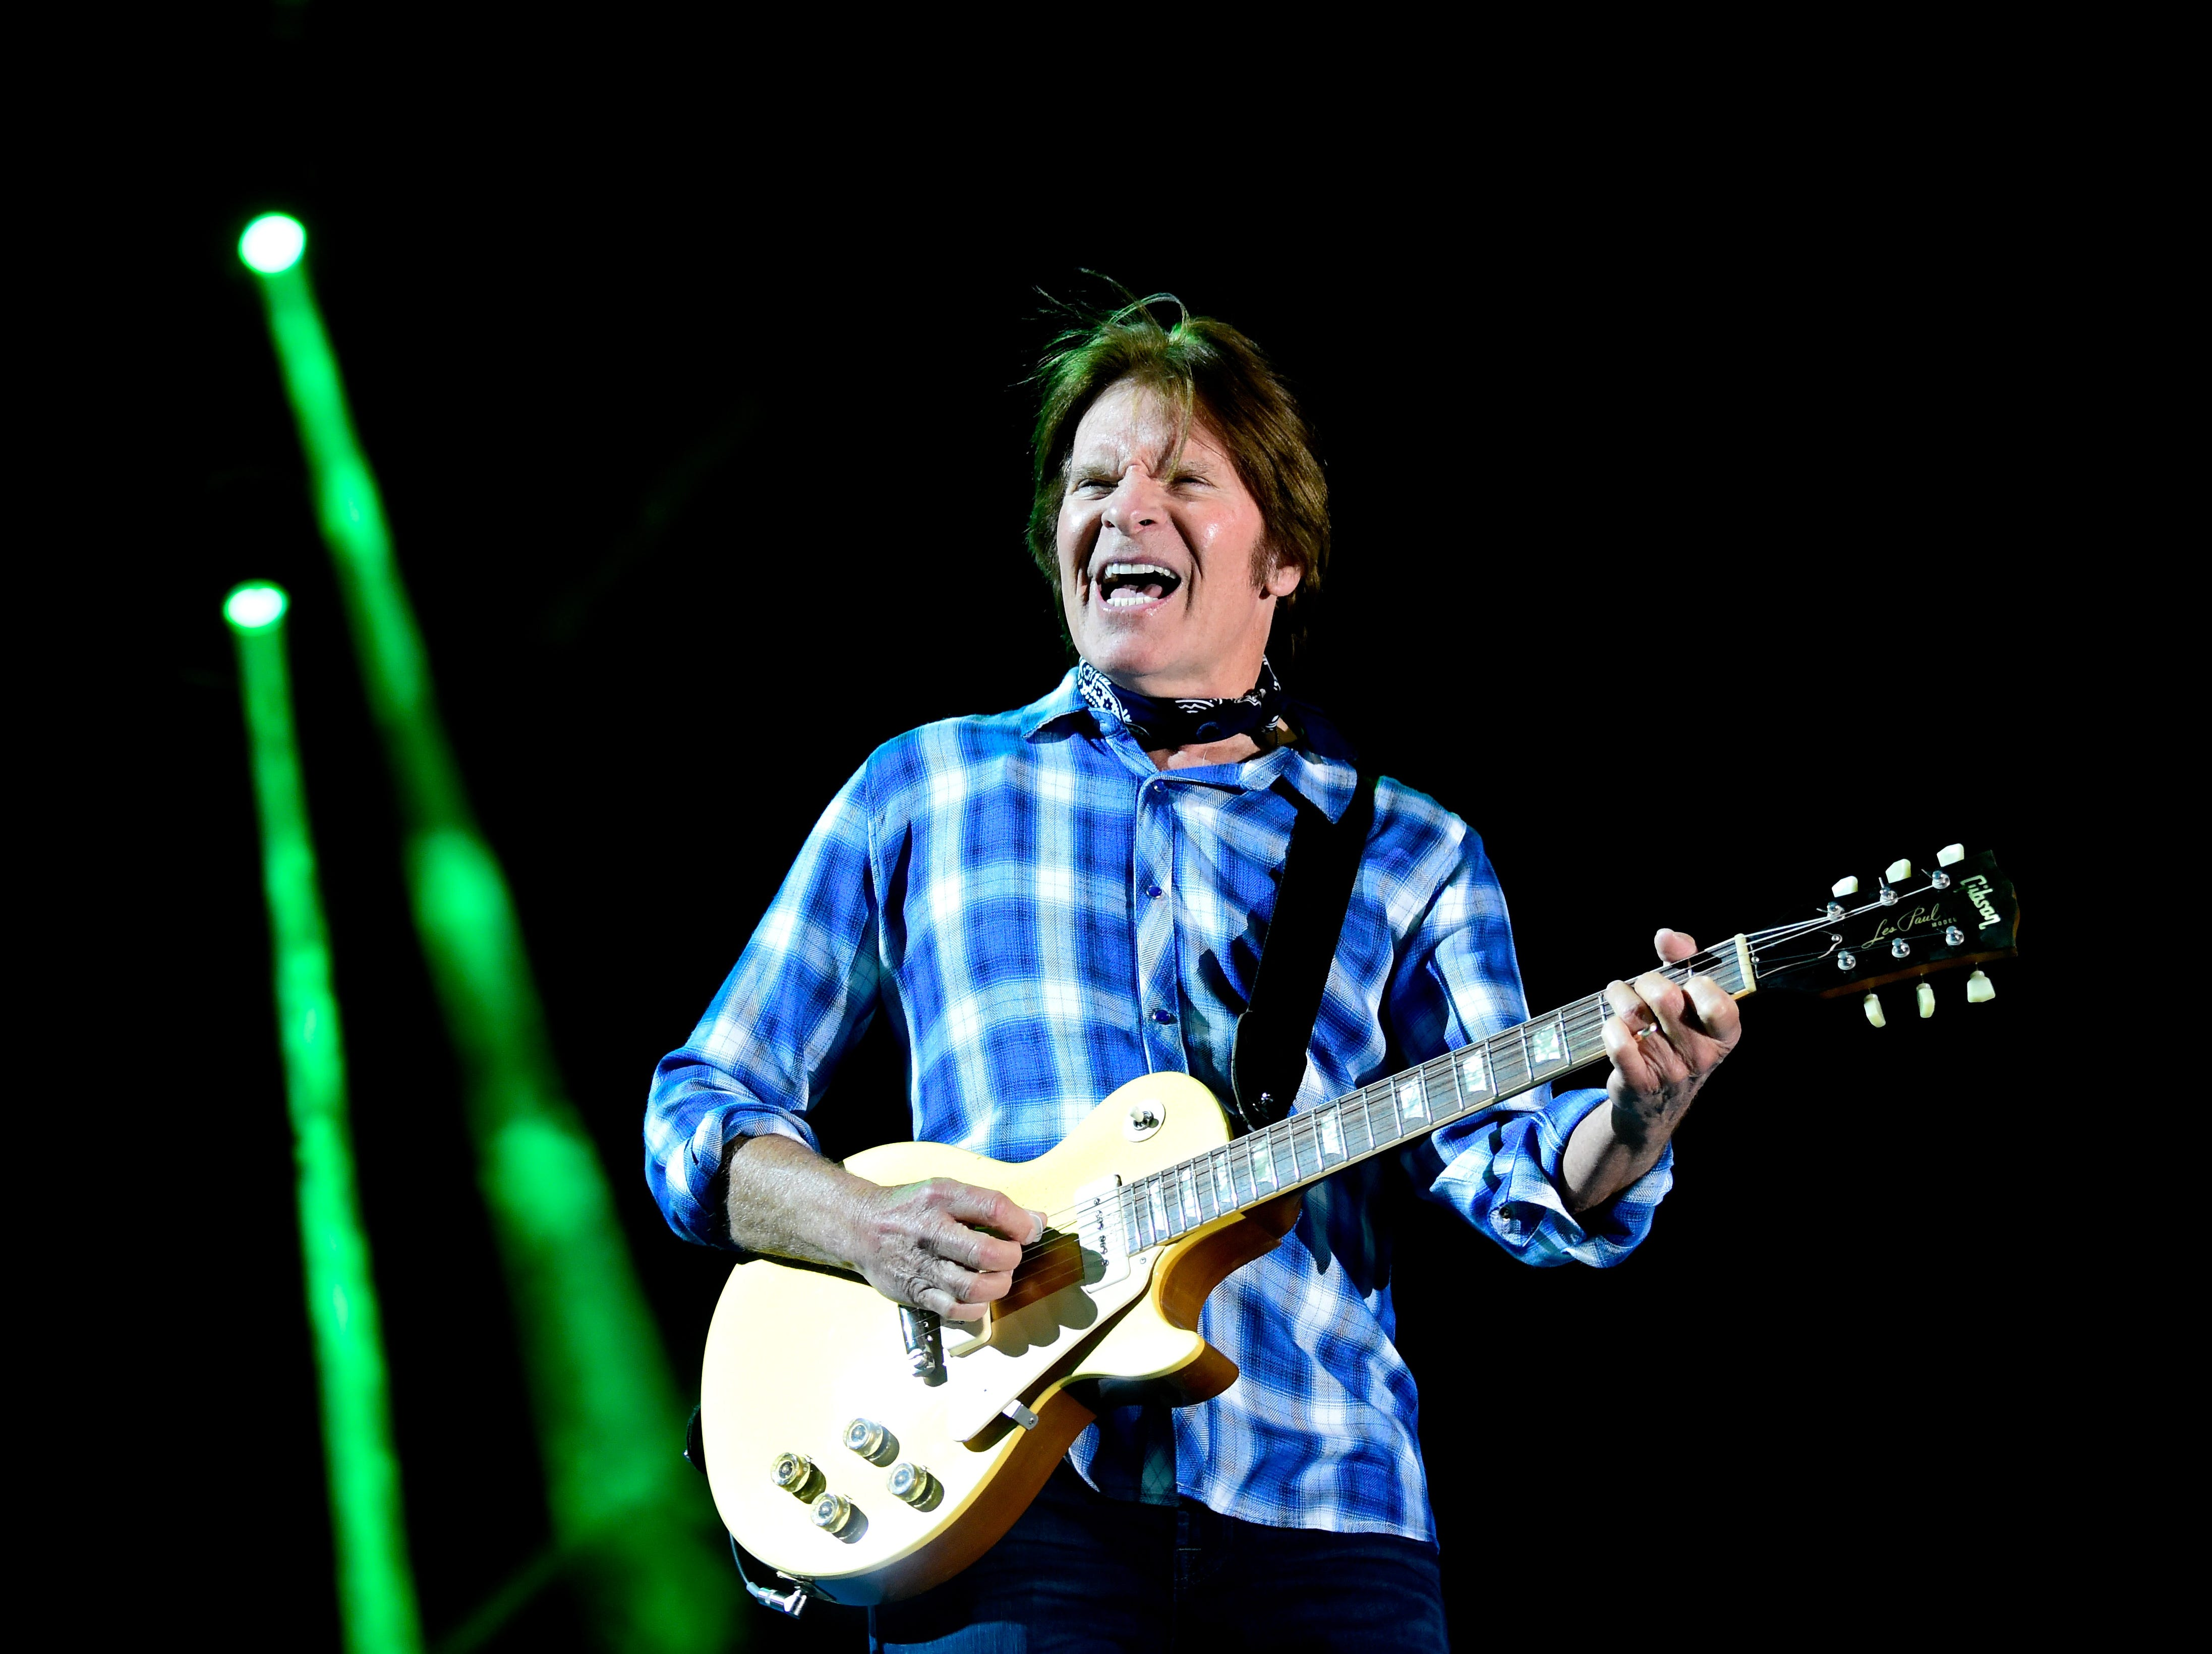 INDIO, CA - APRIL 30:  Musician John Fogerty performs during 2016 Stagecoach California's Country Music Festival at Empire Polo Club on April 30, 2016 in Indio, California.  (Photo by Frazer Harrison/Getty Images) ORG XMIT: 634015619 ORIG FILE ID: 526701868